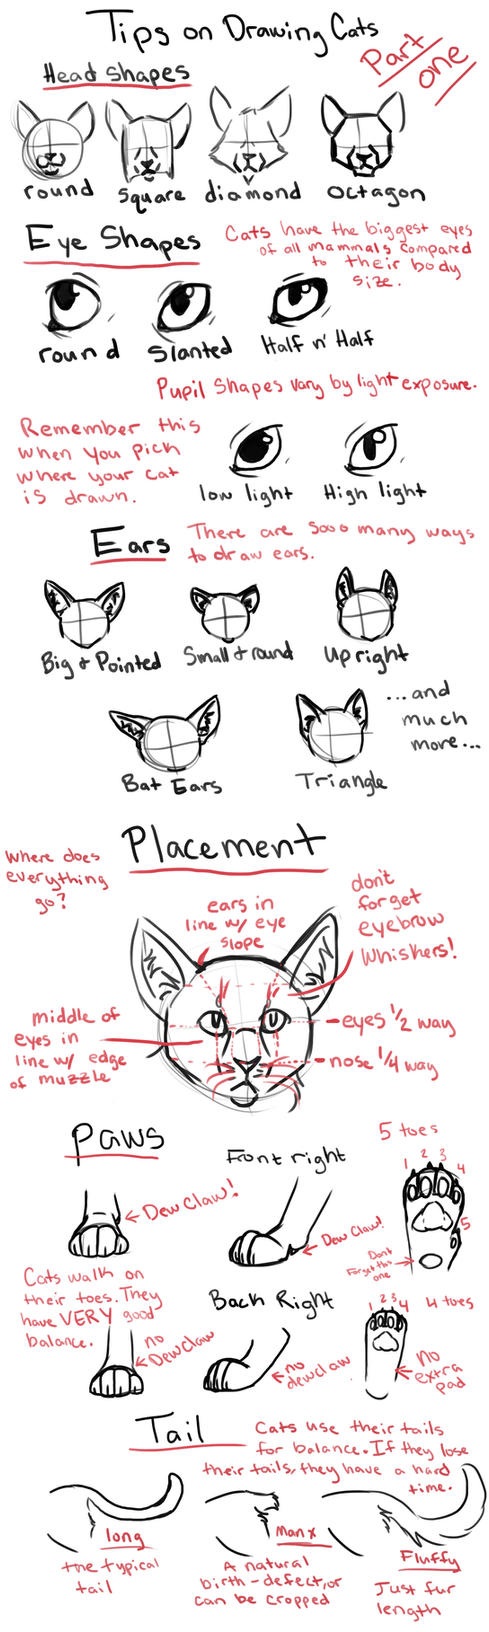 Tips on Drawing Cats part 1 by louli9559